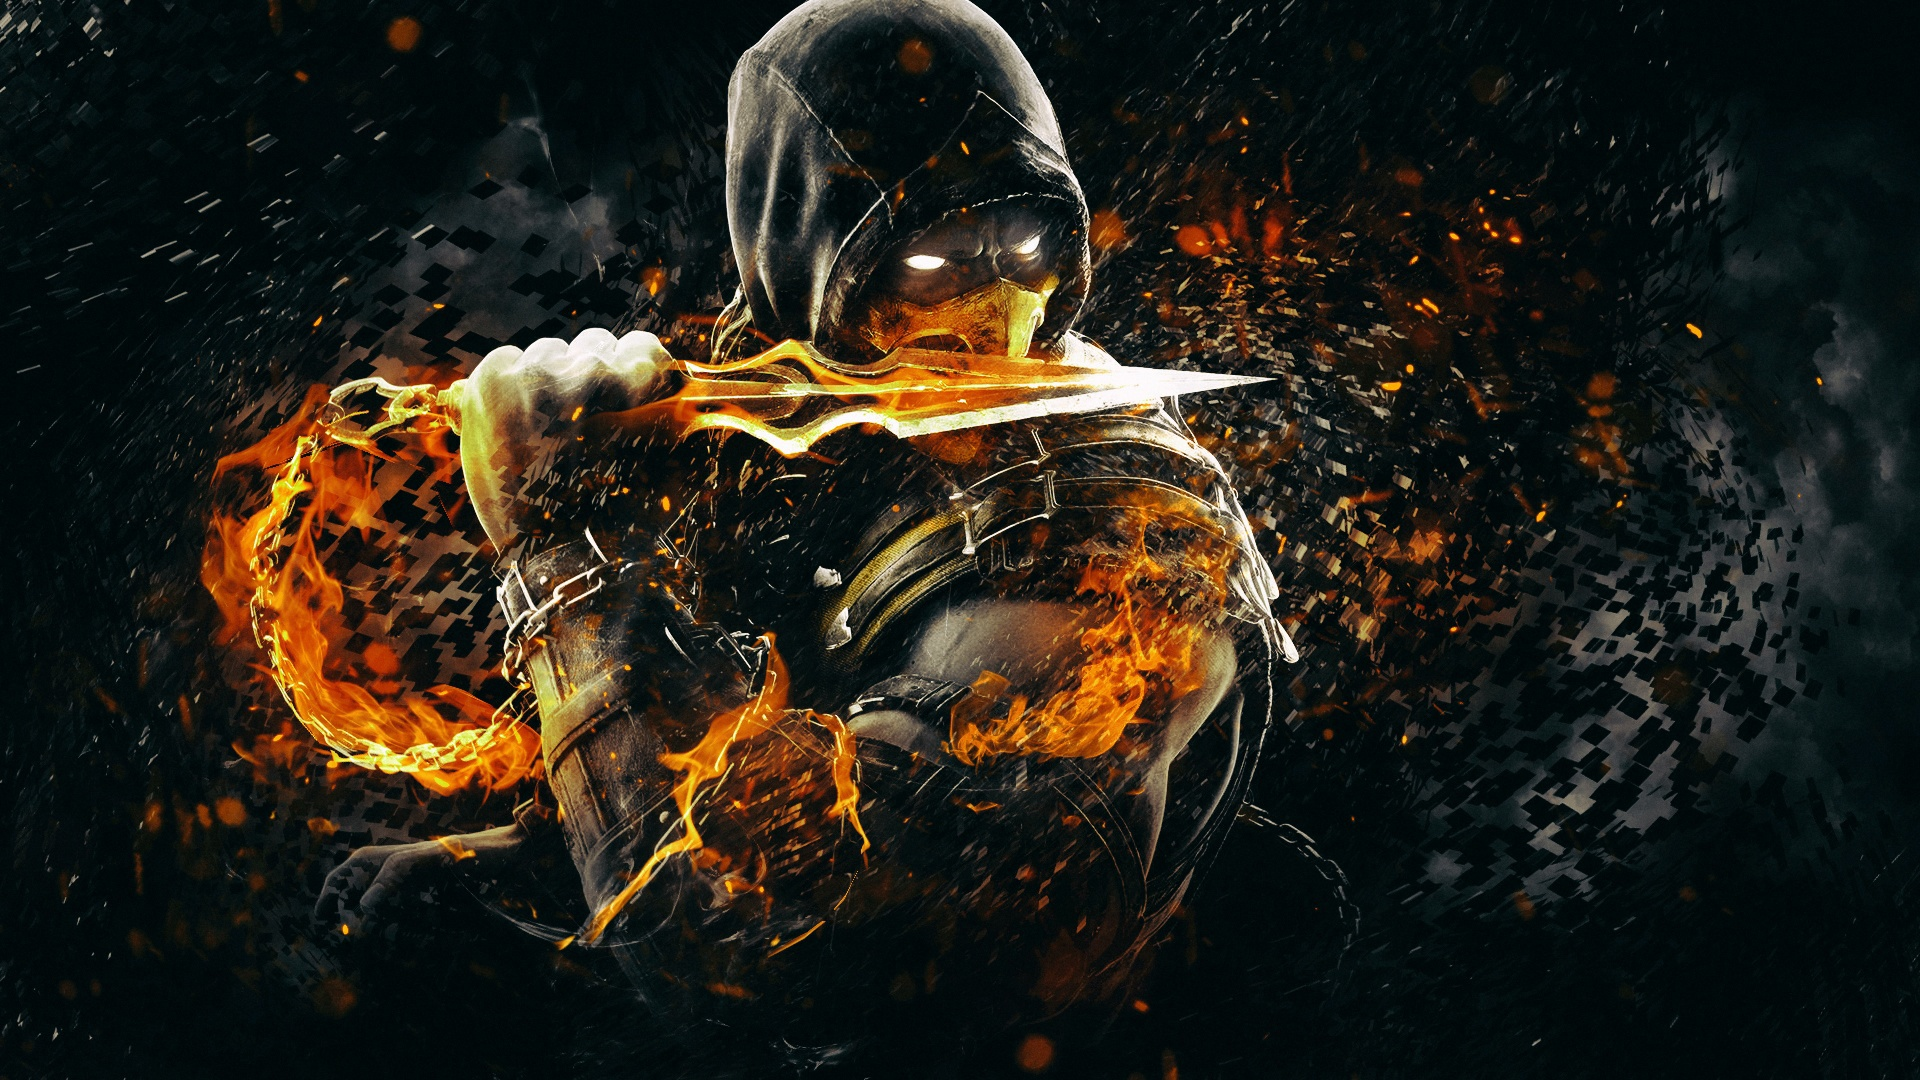 Mortal Kombat X Scorpio 3d Cool Video Games Wallpapers: Scorpion Mortal Kombat X Art Wallpapers